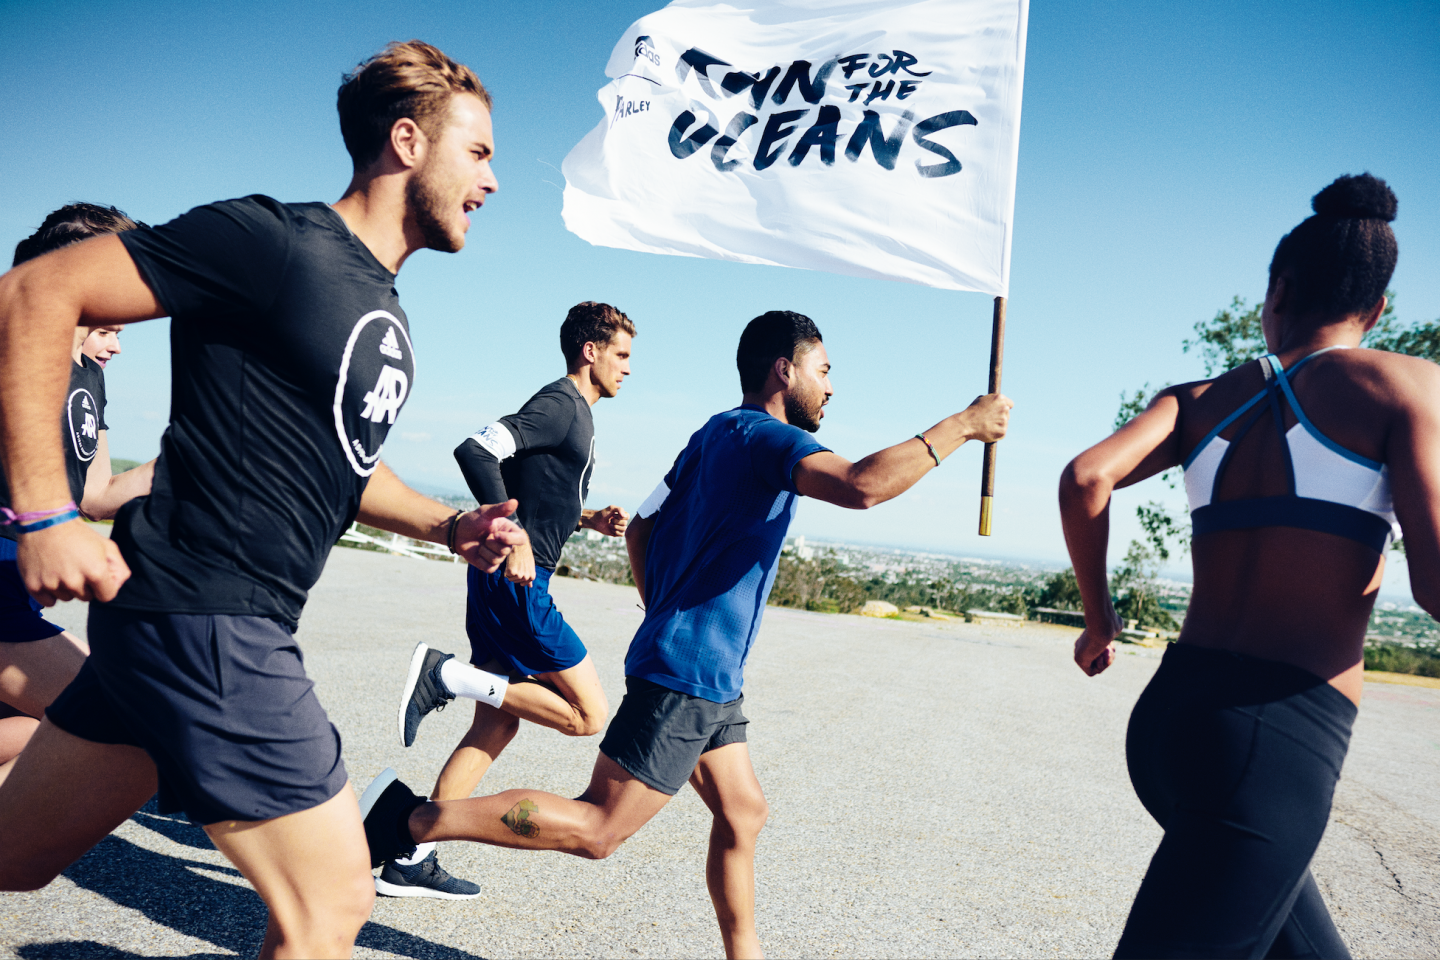 A group of runners hold a run for the oceans flag. parley, run, oceans, running, runners